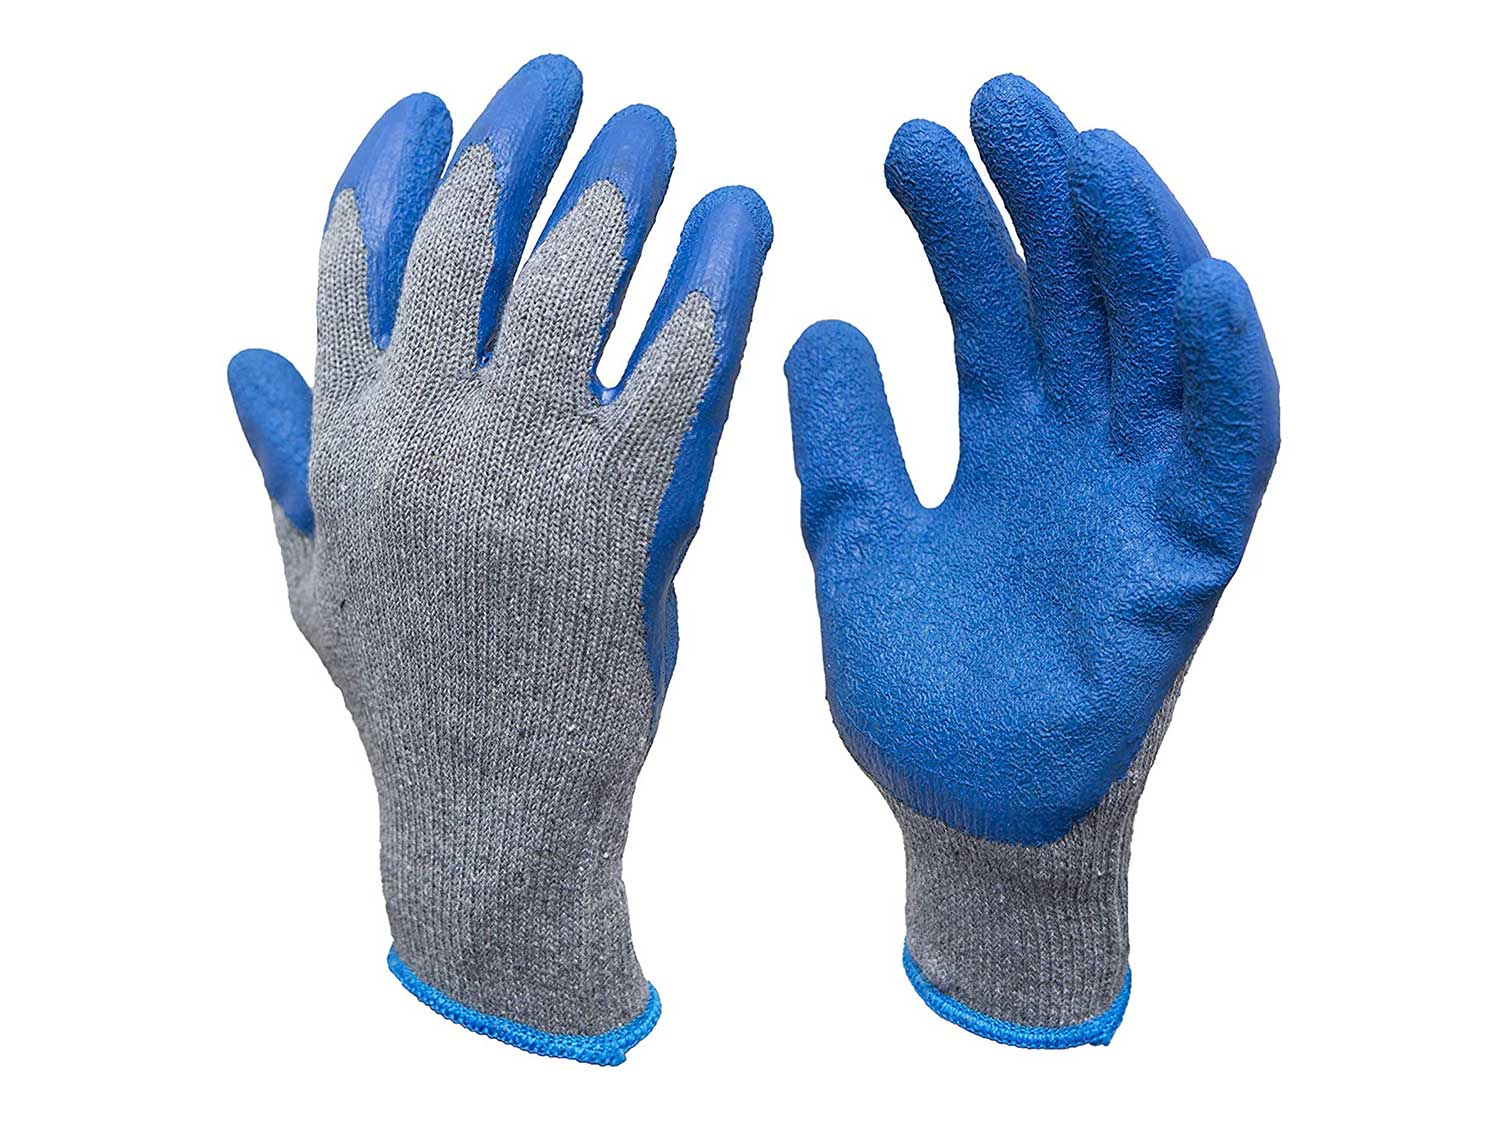 G & F Products - 3100L-DZ-Parent 12 Pairs Large Rubber Latex Double Coated Work Gloves for Construction, gardening gloves, heavy duty Cotton Blend Blue